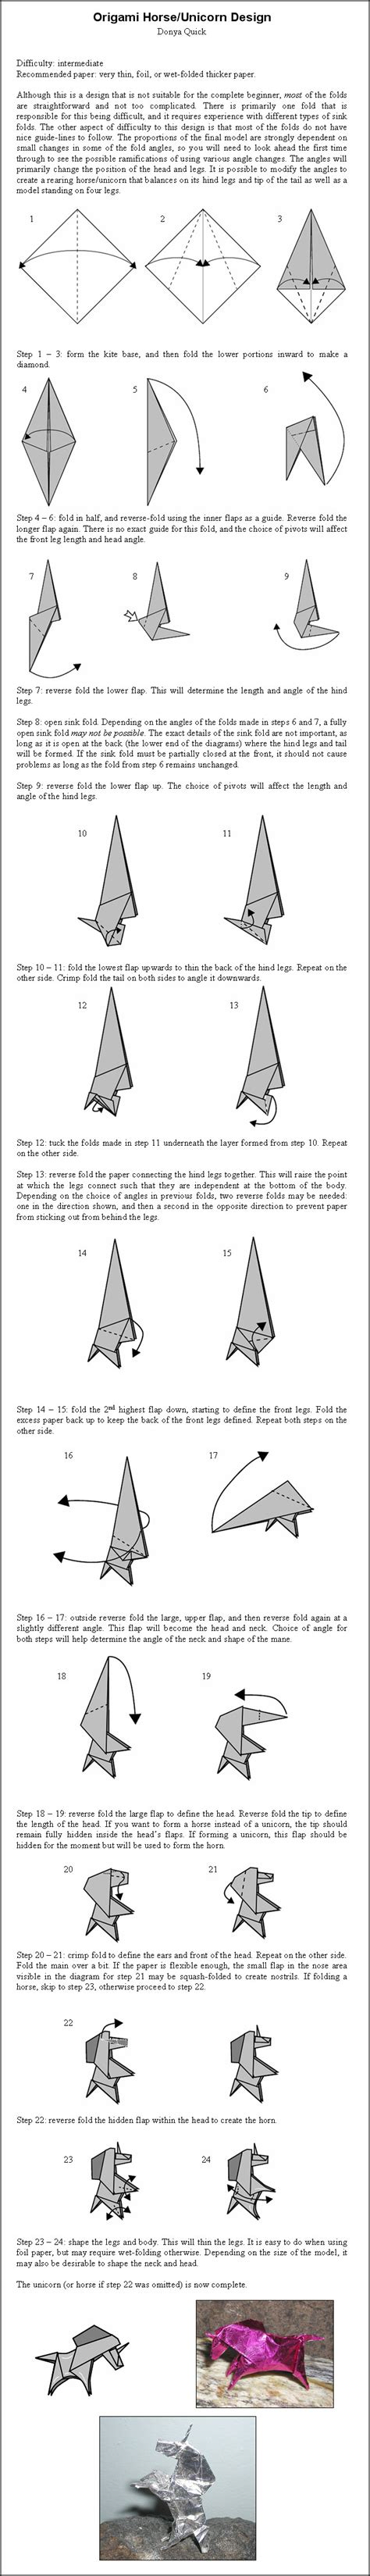 Origami Unicorn Diagram - a duchess nonethelesss unicorn origami